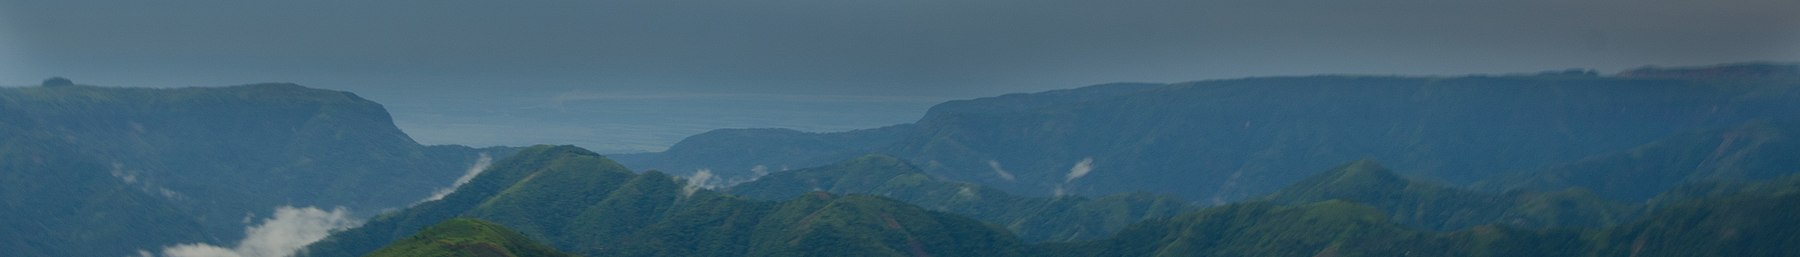 Hills of Cherrapunjee (7344211154) (cropped).jpg